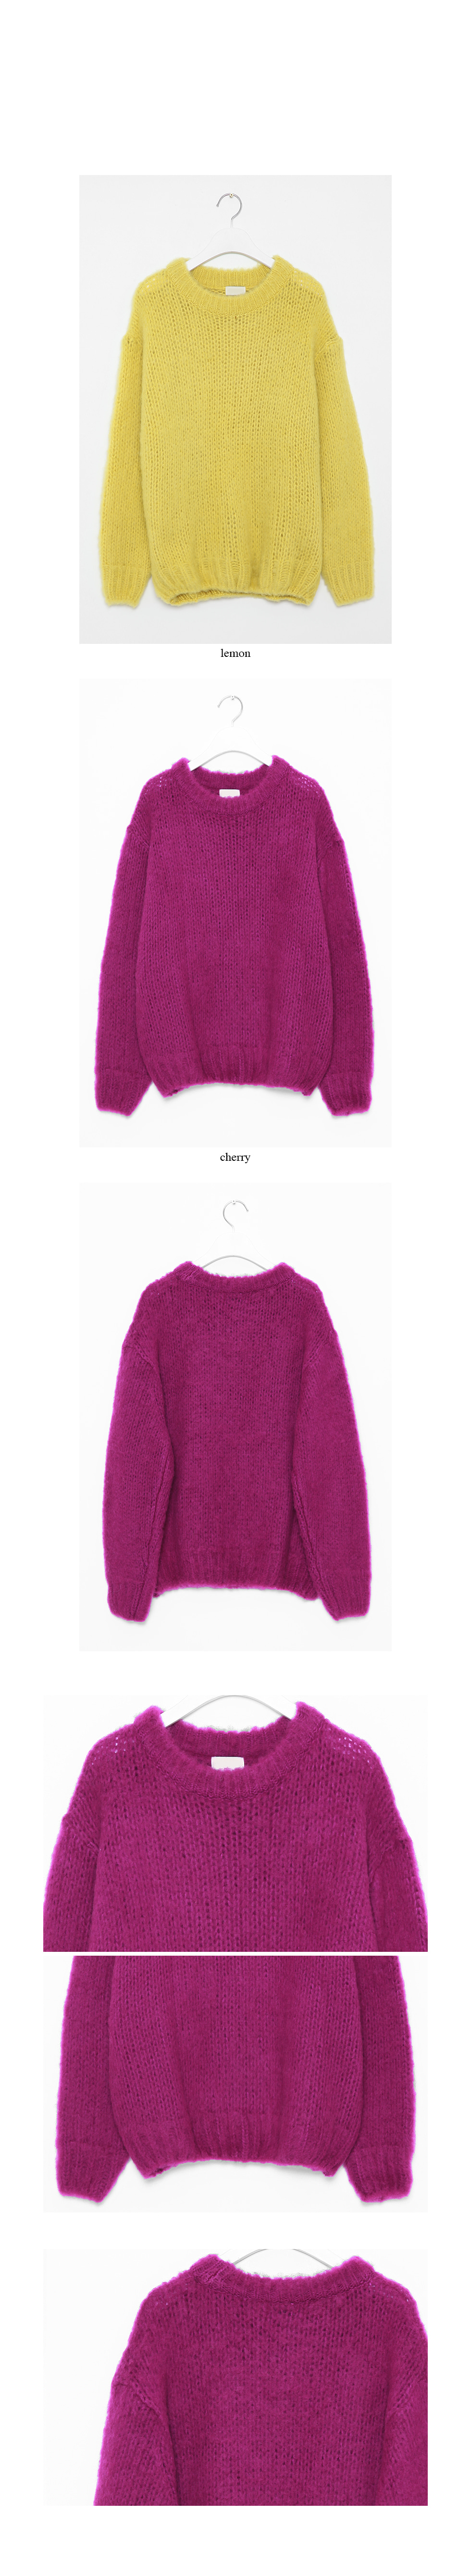 oversized colorful sweater